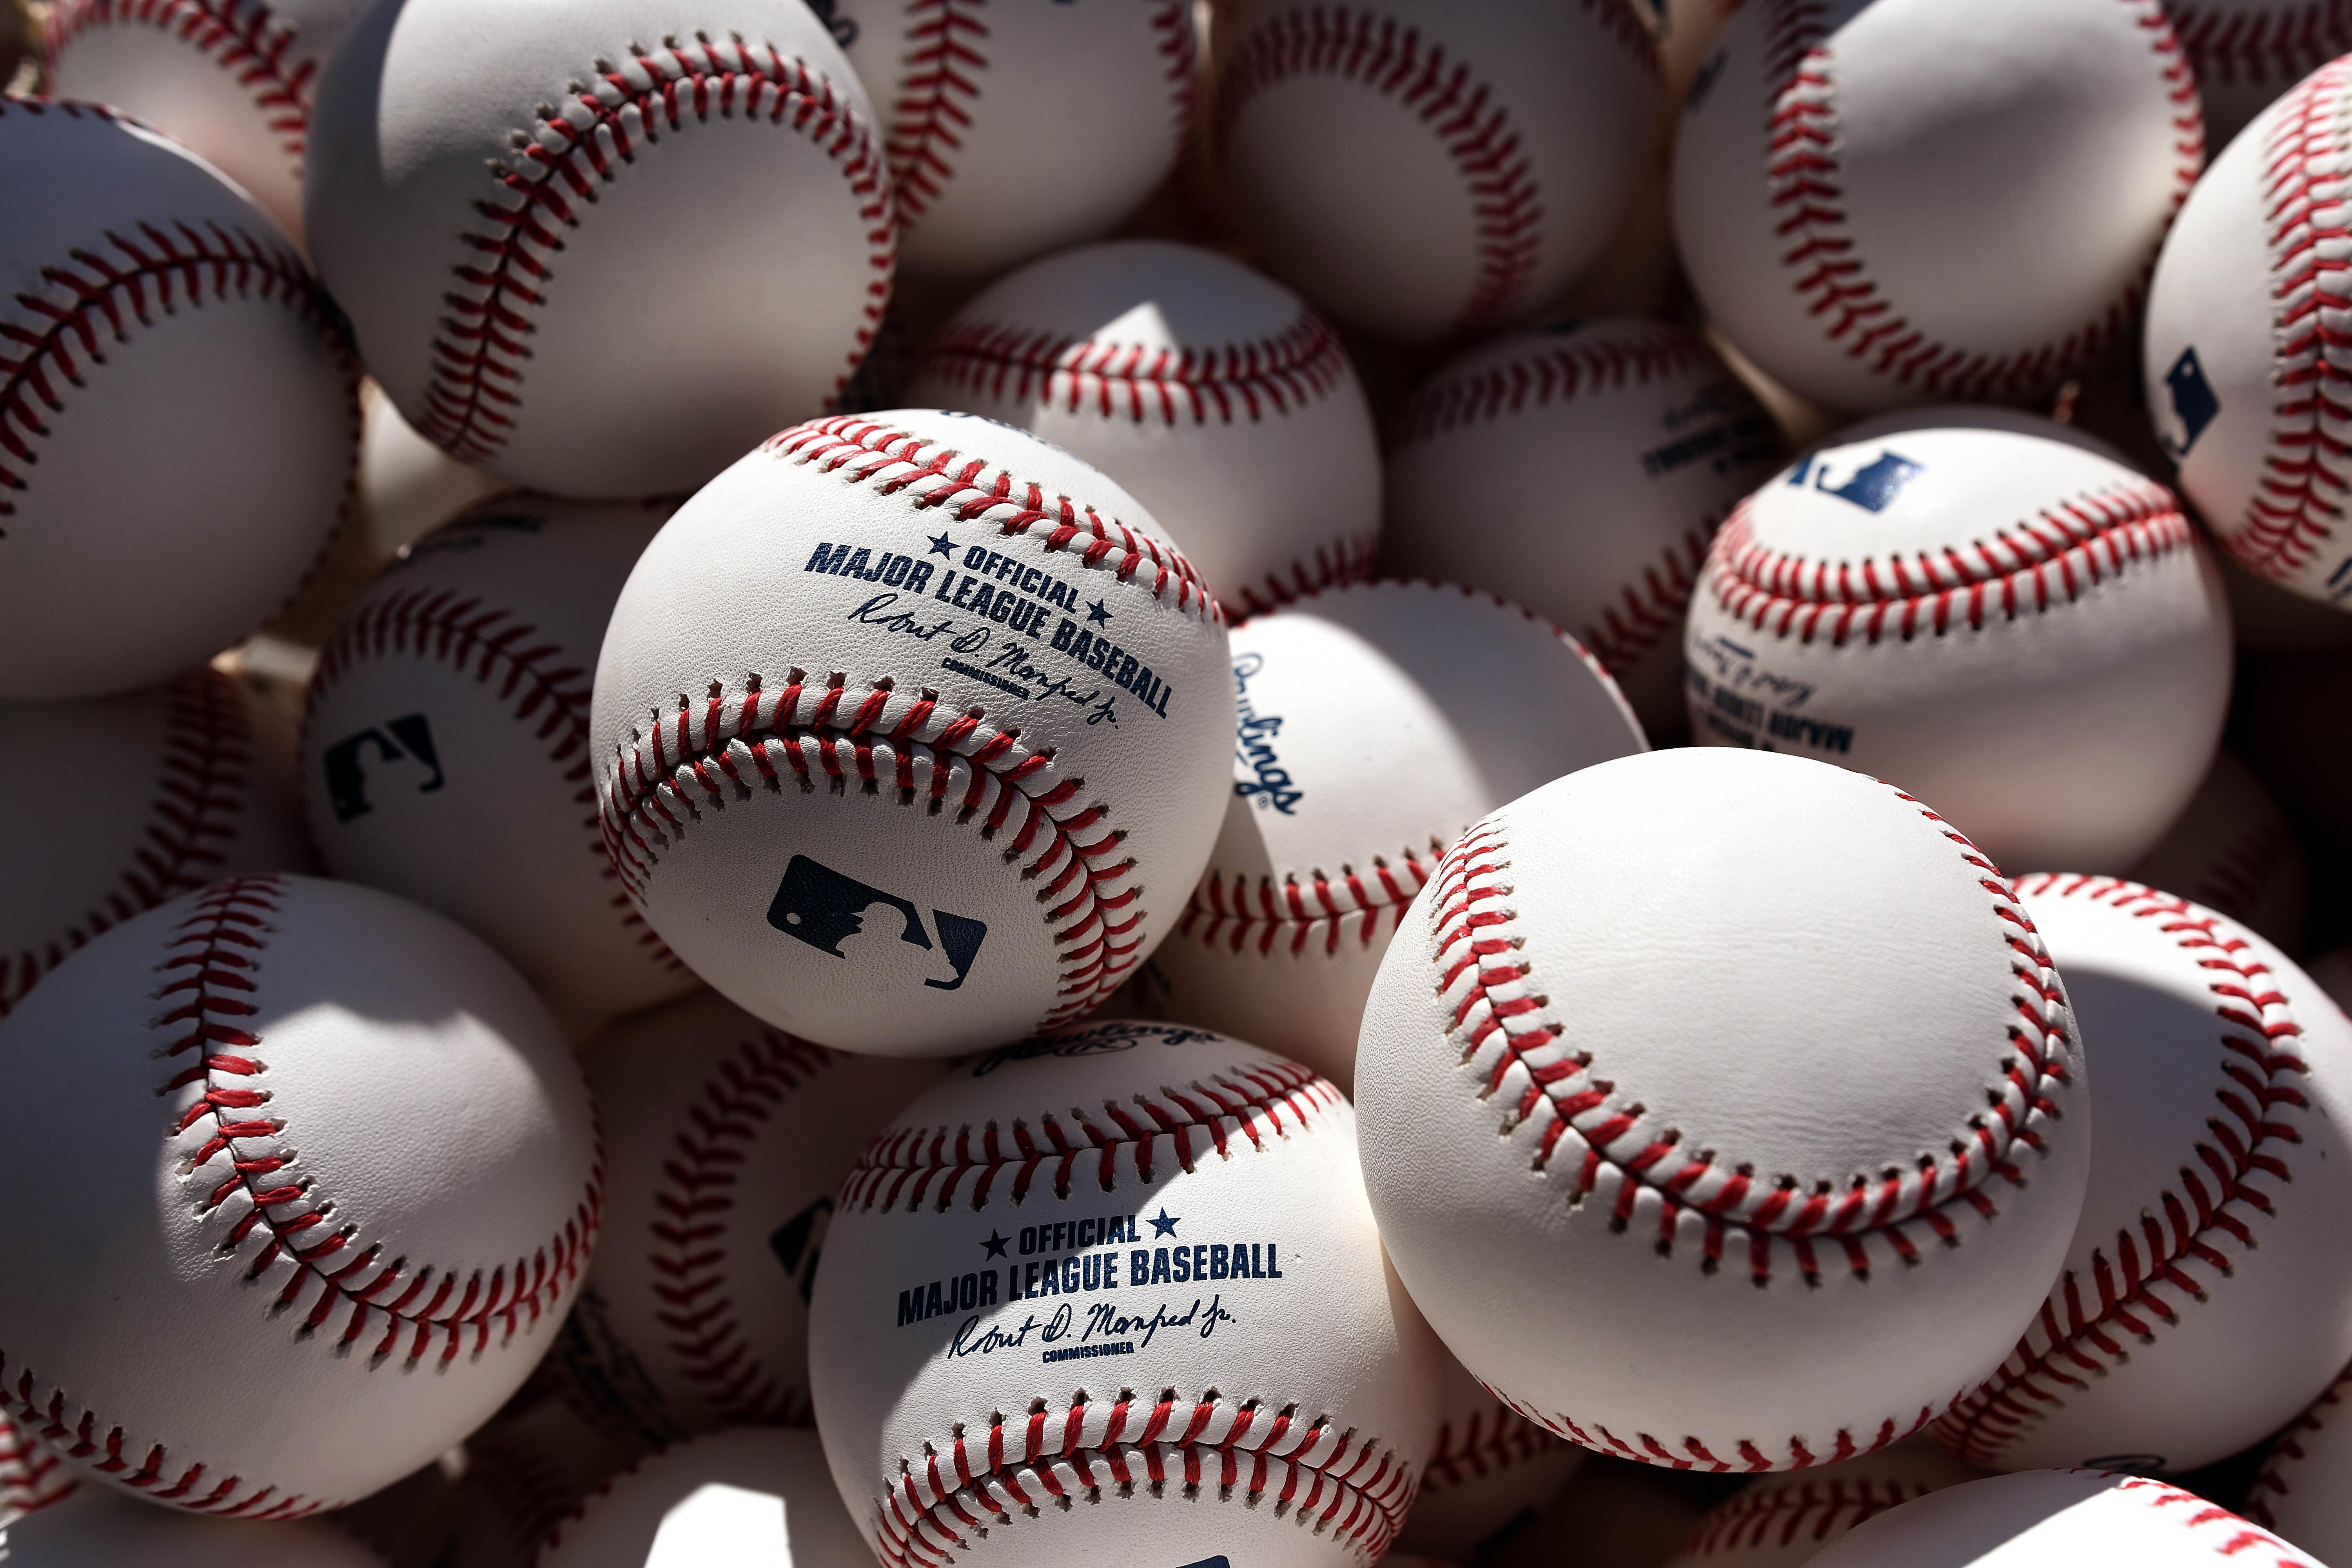 9881950-mlb-baltimore-orioles-workouts